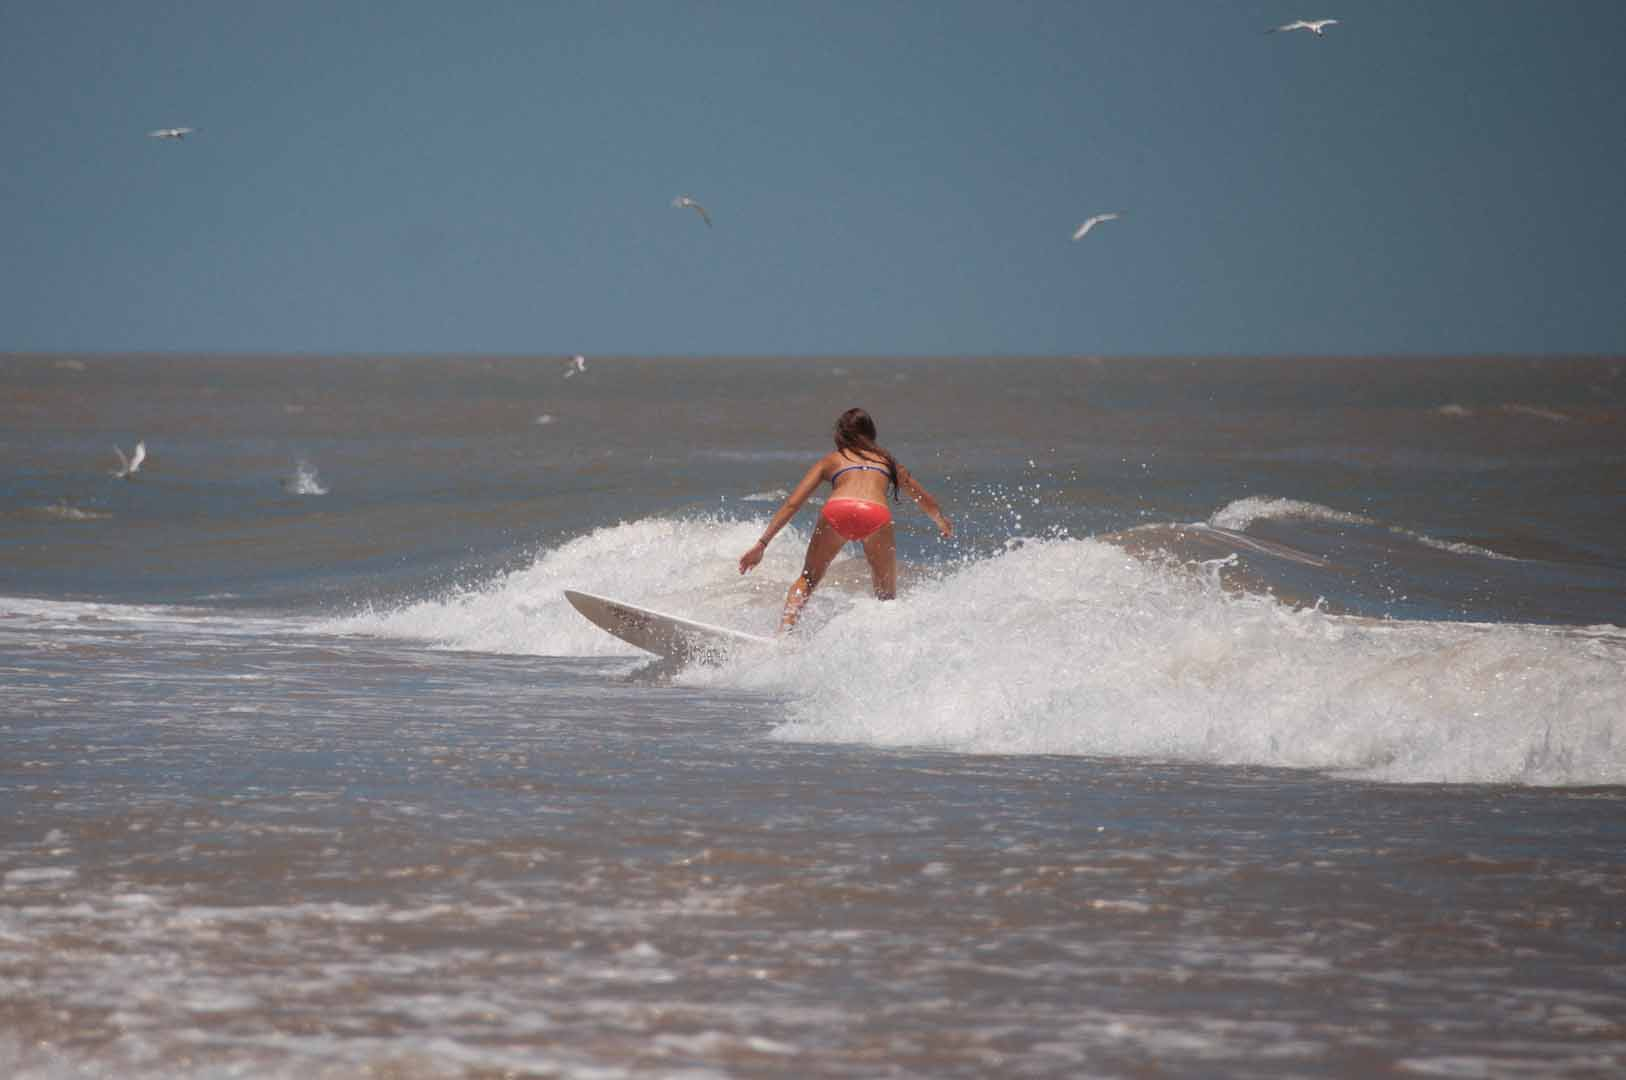 SurfsideLateJune_20150627_407